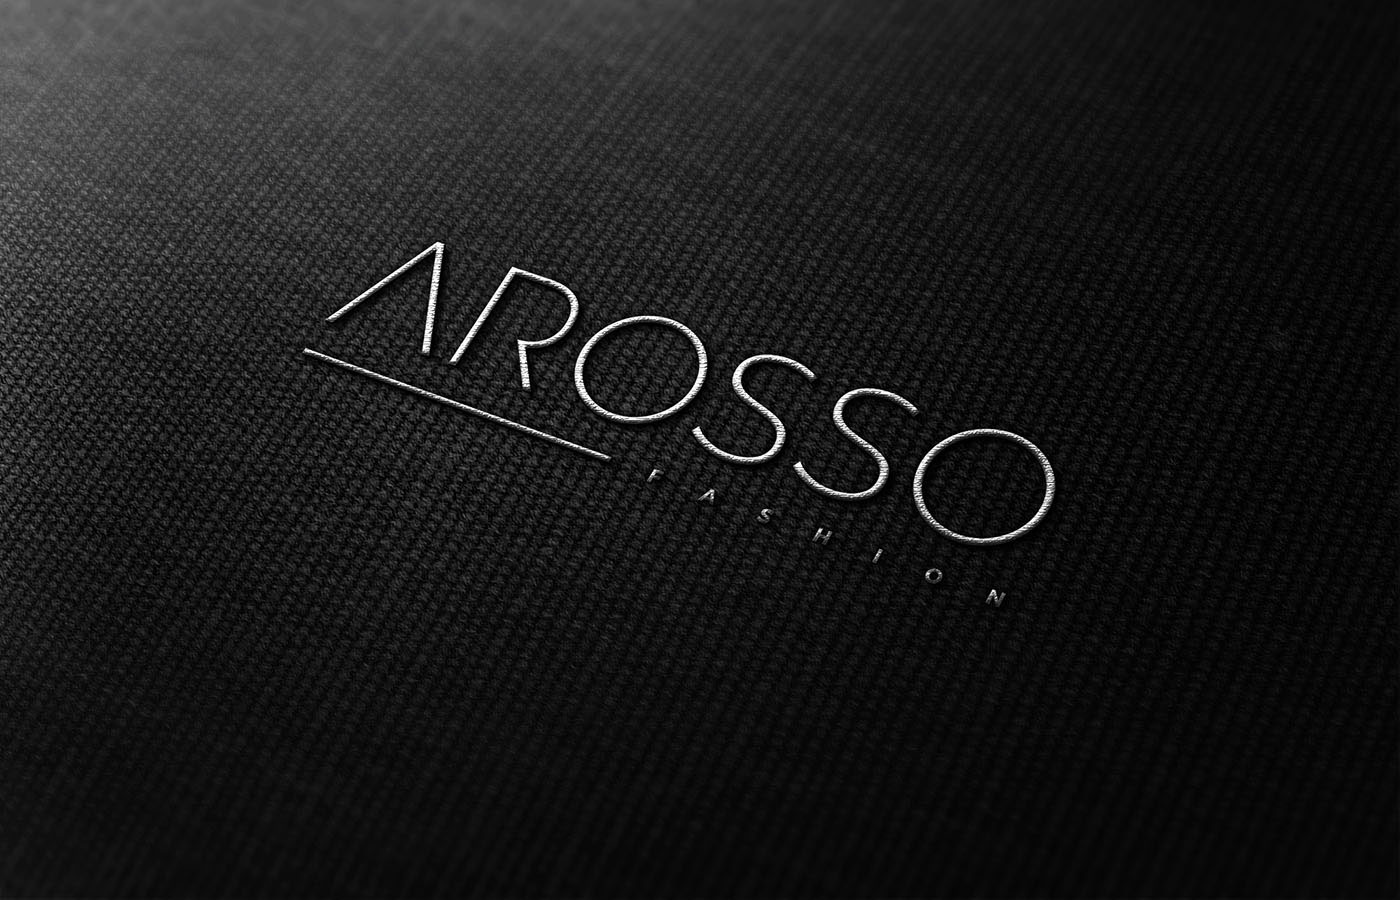 logo-arosso-stitch.jpg